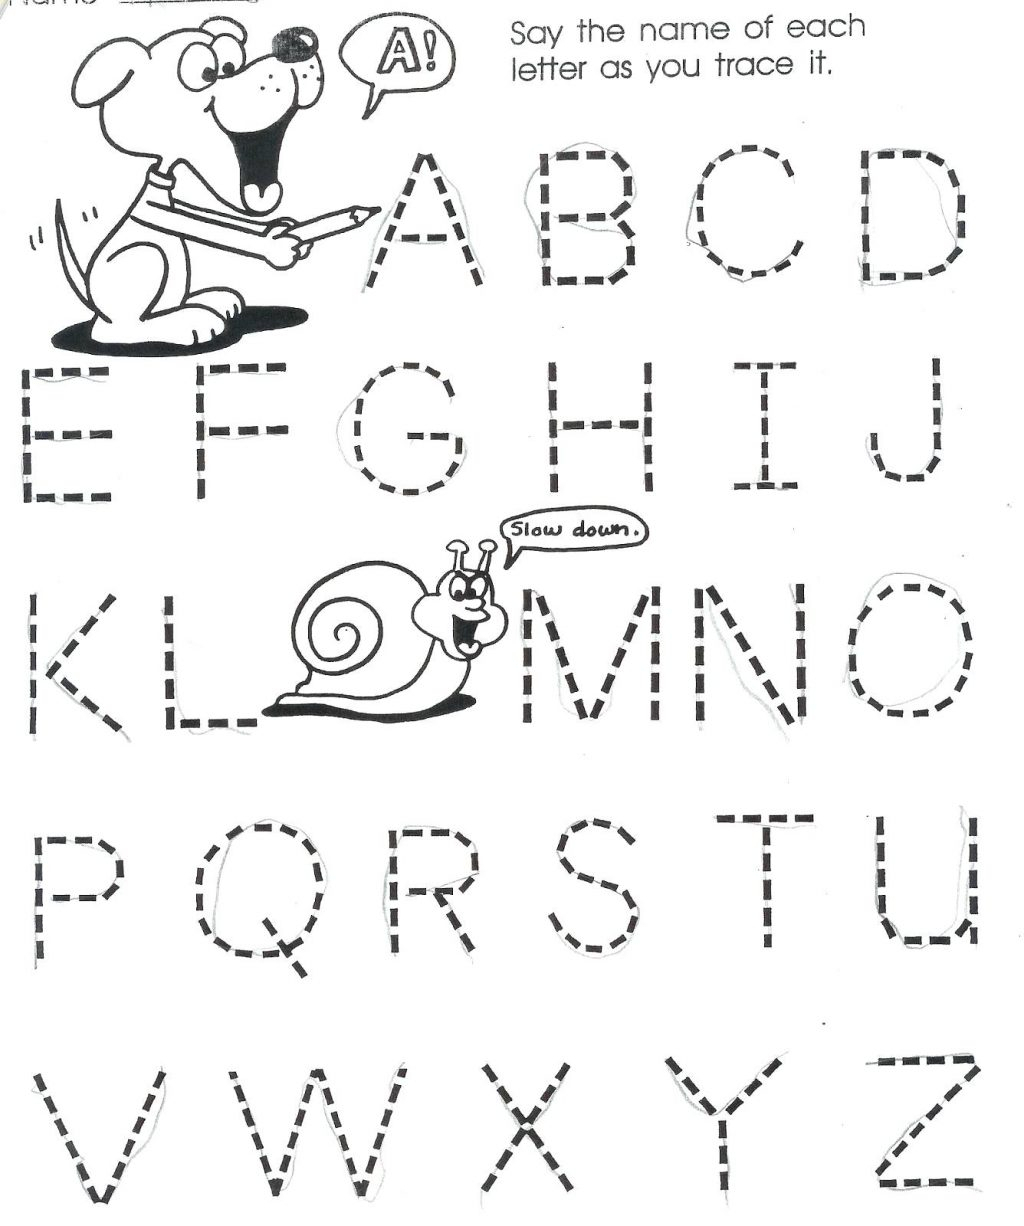 3 Year Old Worksheets Tracing Letters | Printable Worksheets with regard to Free Alphabet Worksheets For 3 Year Olds